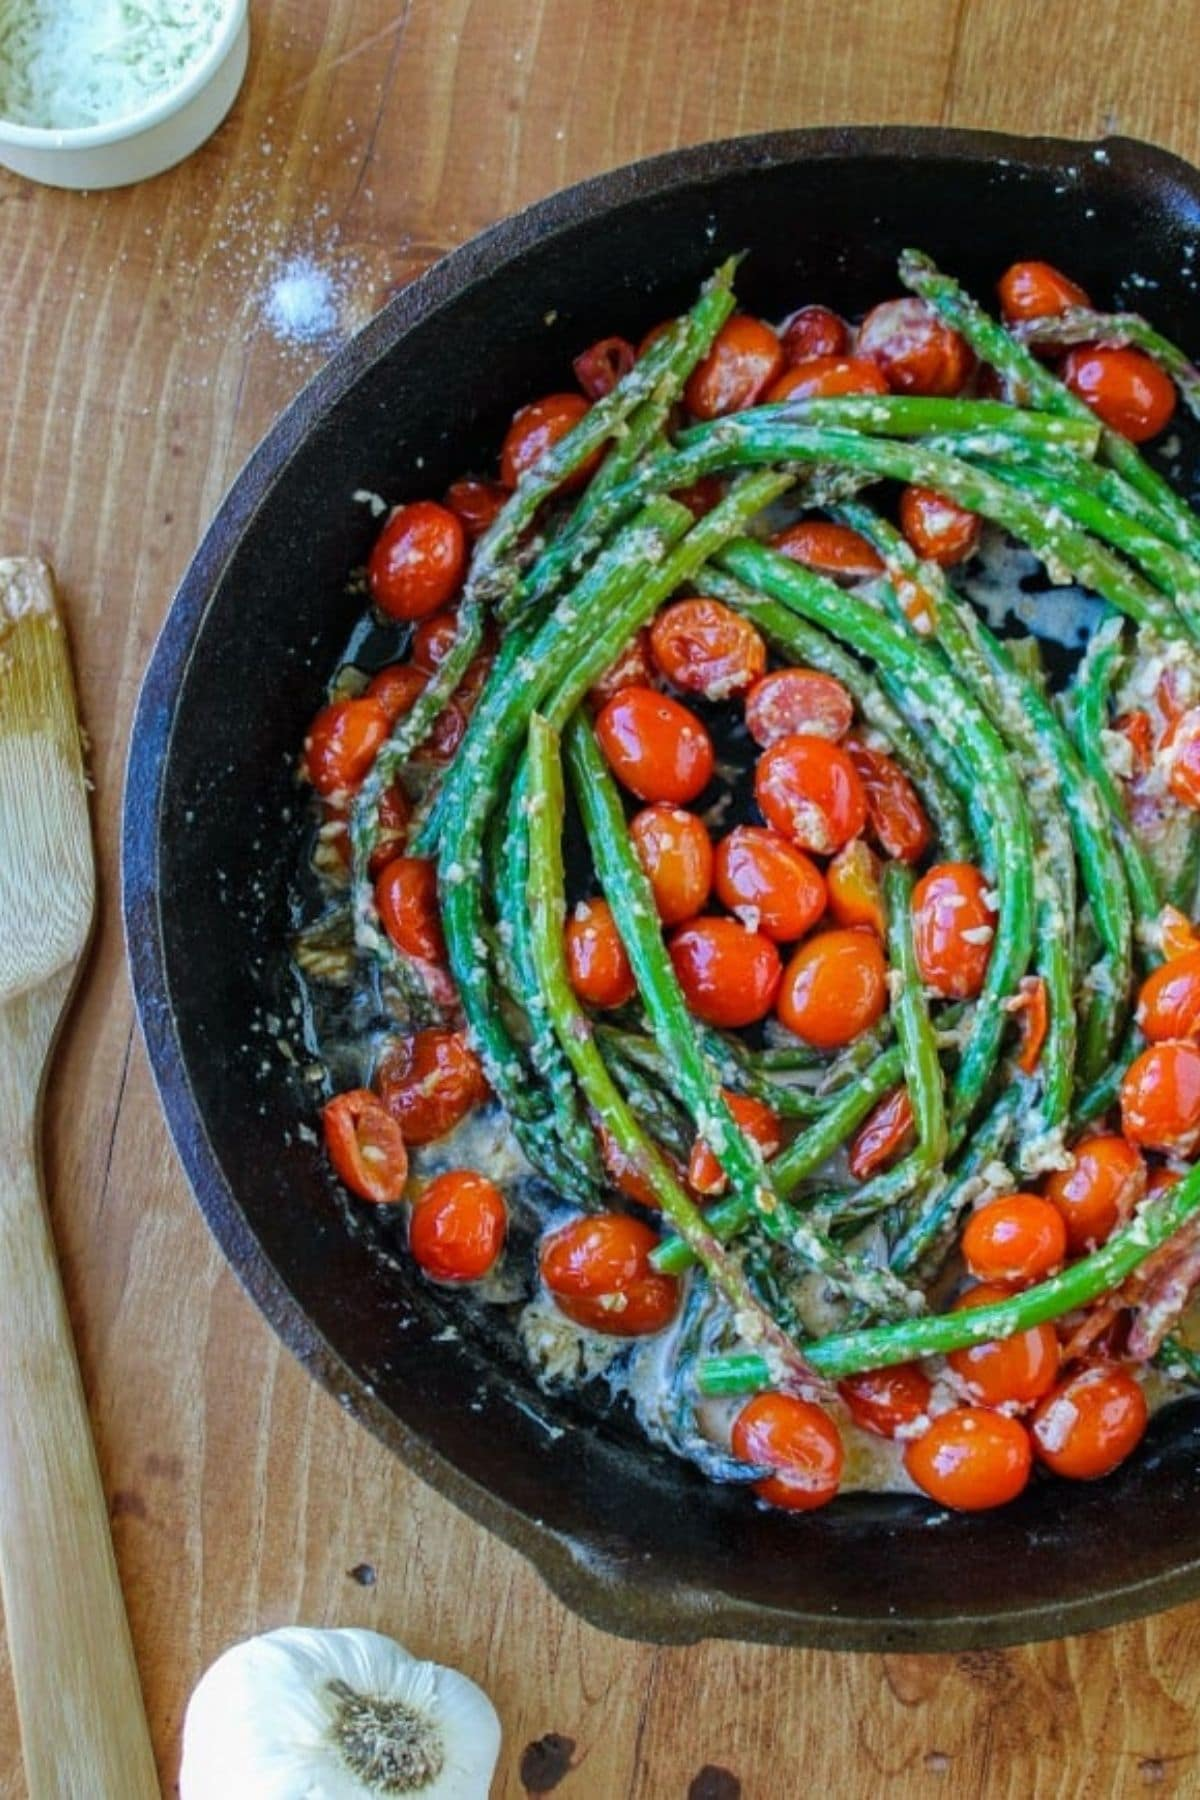 Cherry tomatoes and asparagus in cast iron skillet